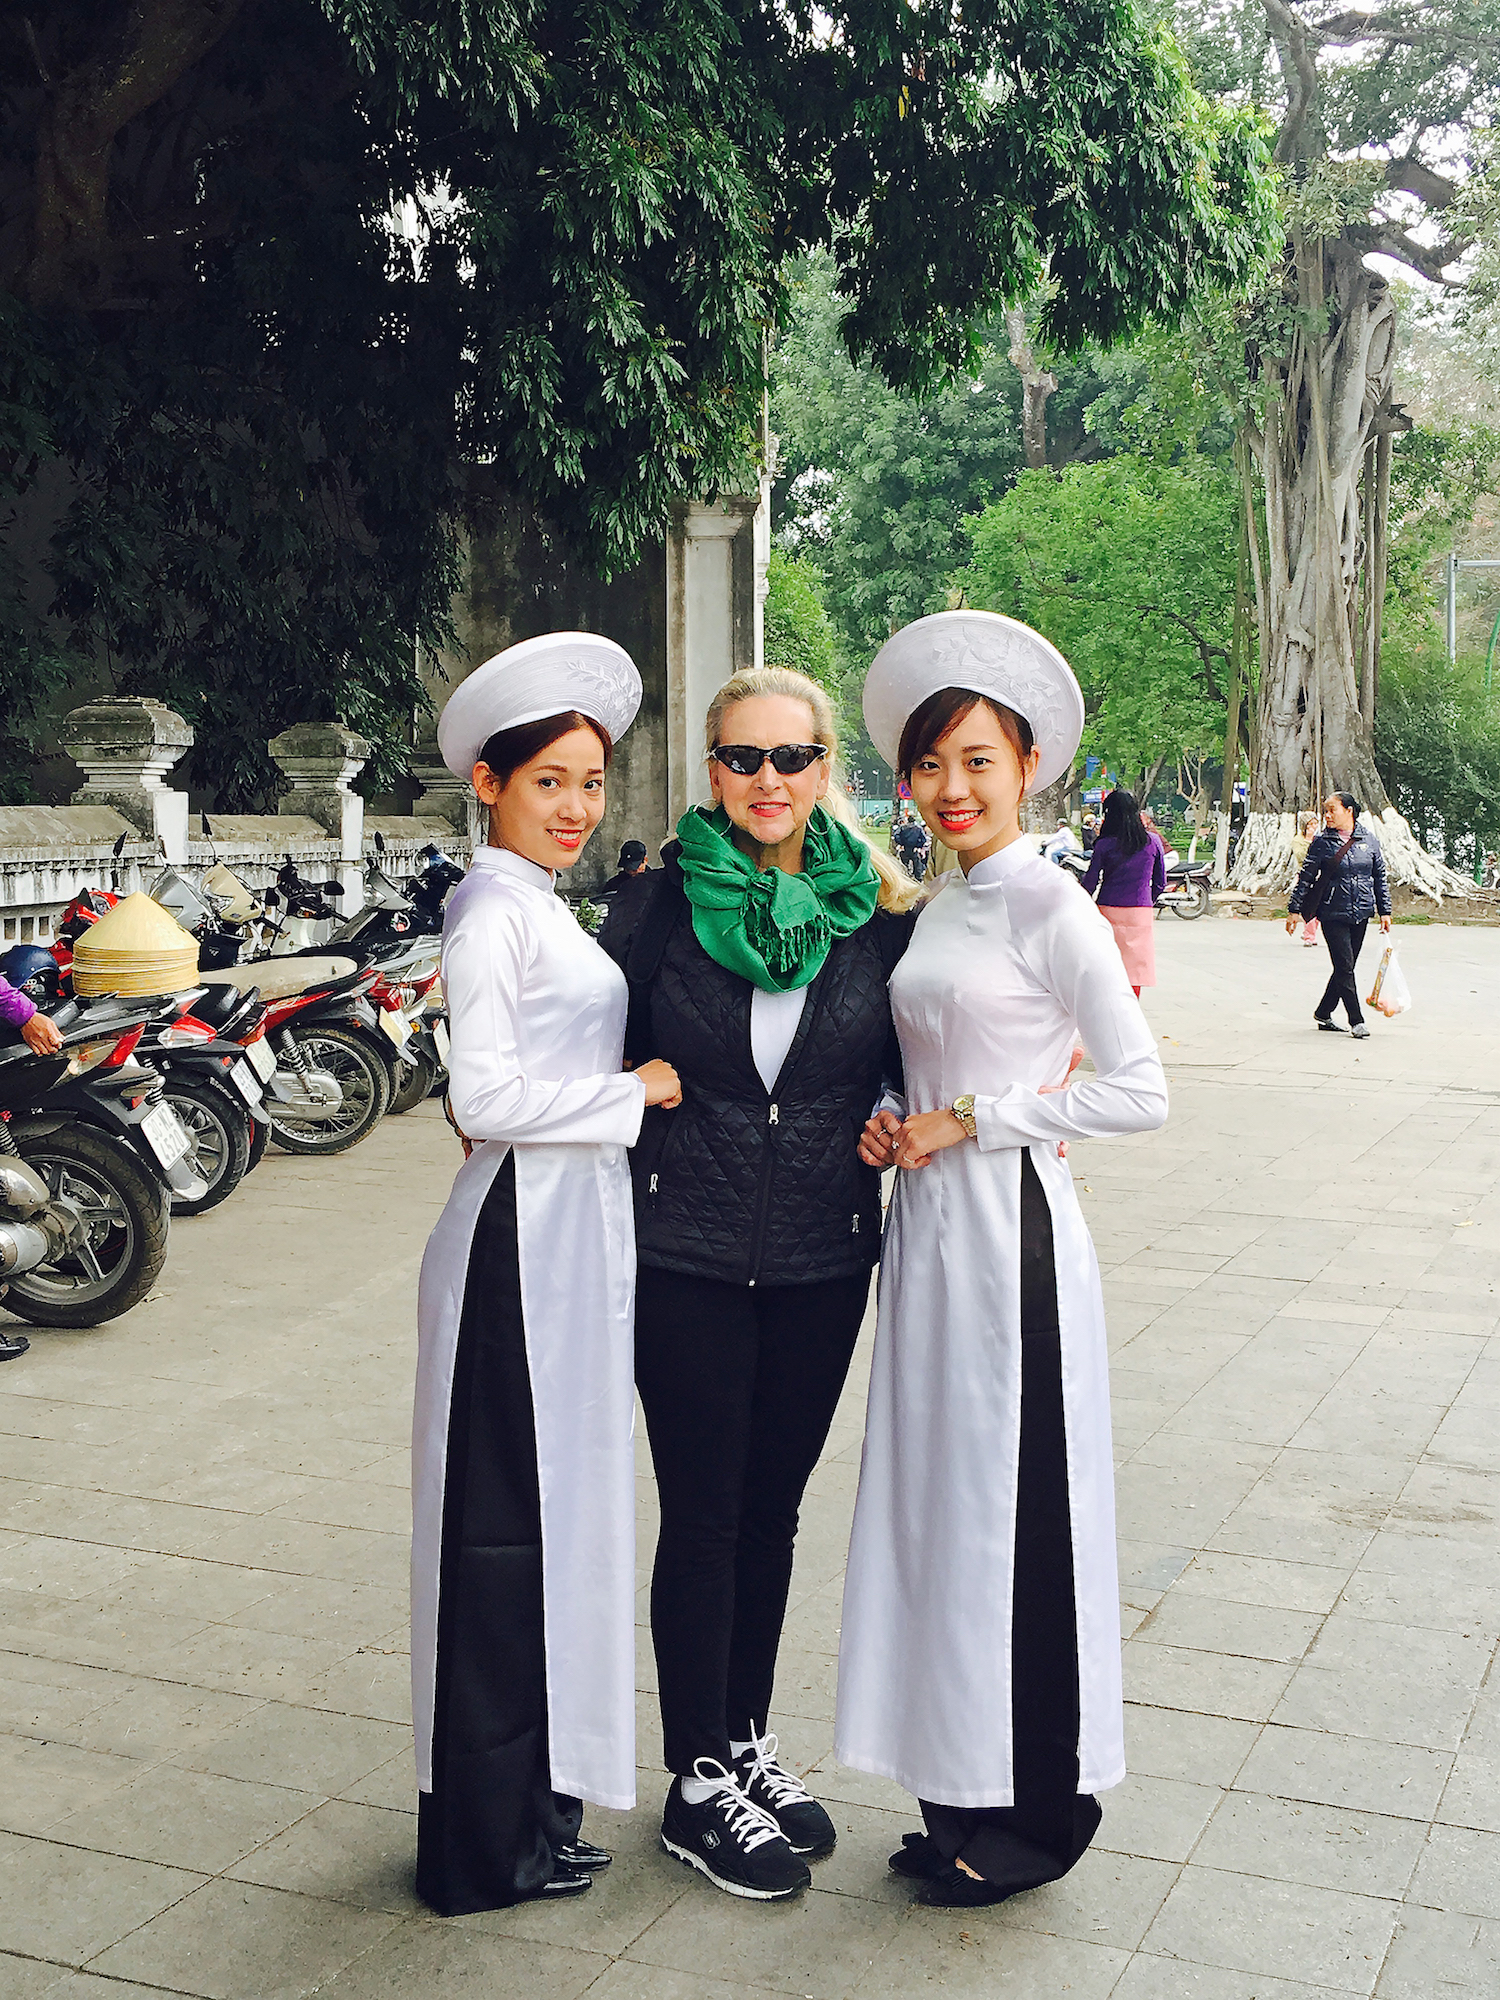 Astrid Clements with two Hanoi tour guides dressed in the traditional Vietnamese áo dài.